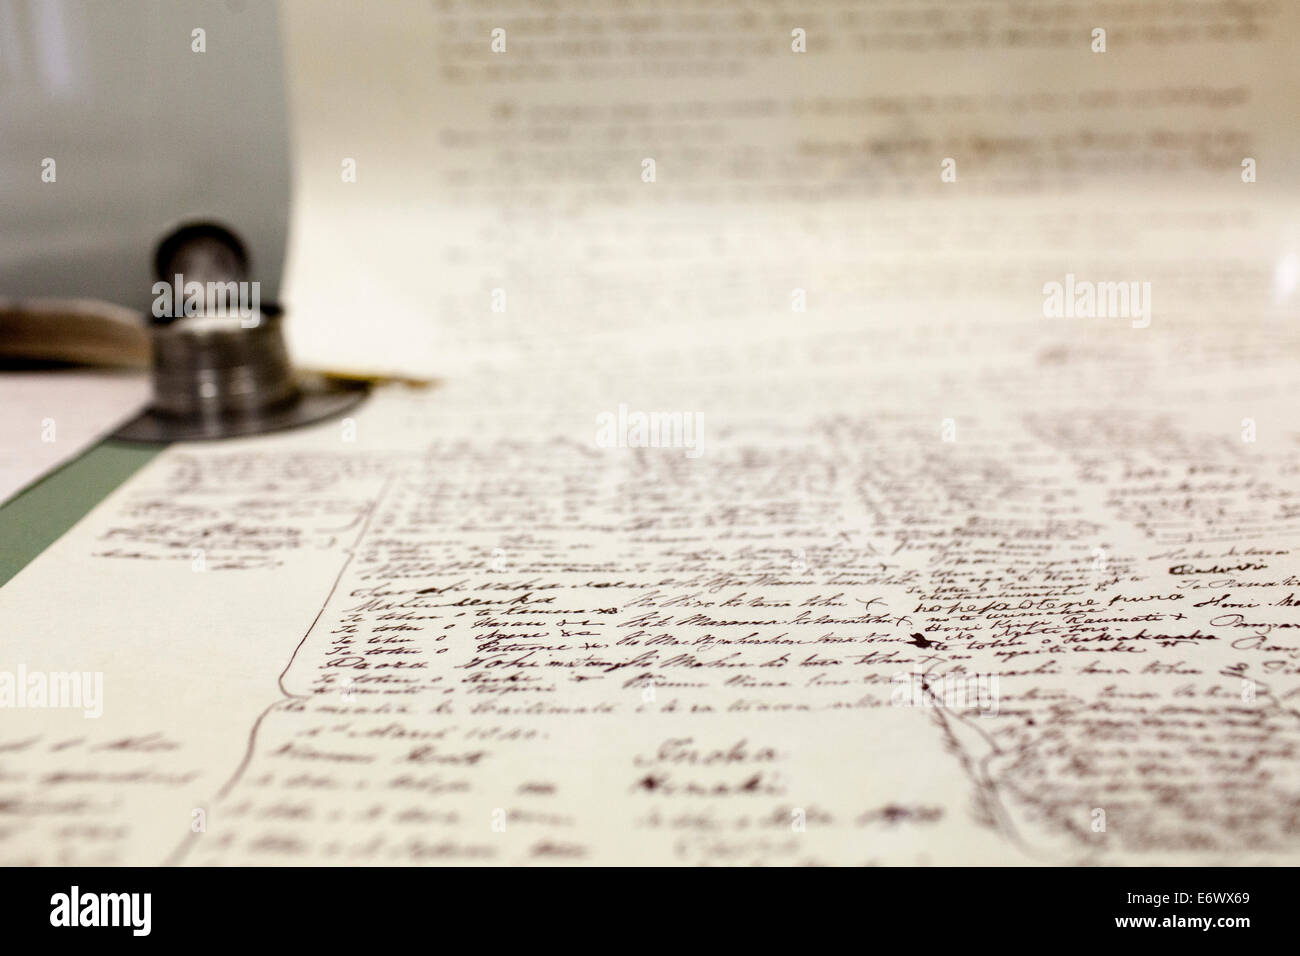 Controversial historical founding document, Treaty of Waitangi in the Museum near Paihia, North Island, New Zealand - Stock Image